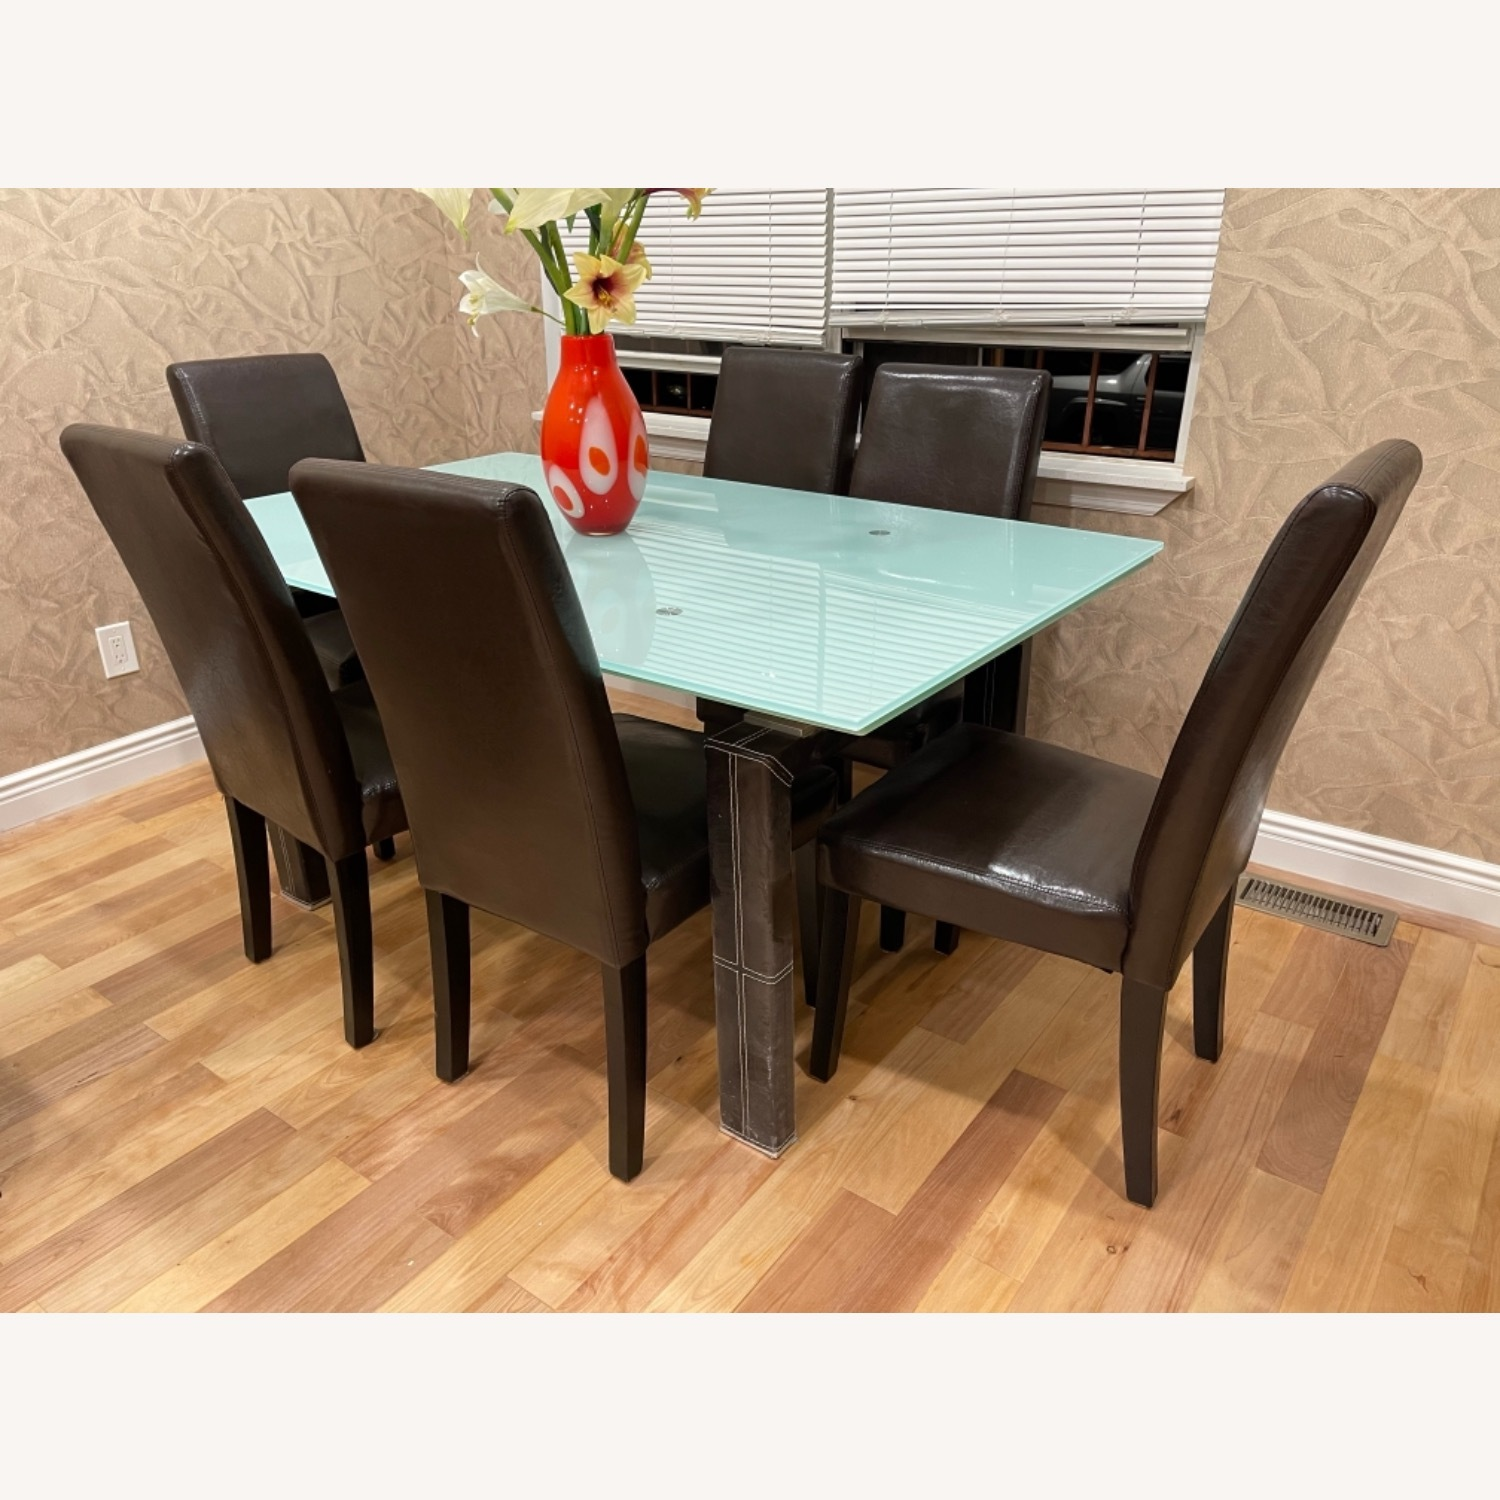 Esf Dining Table with 6 Coaster Chairs - image-0